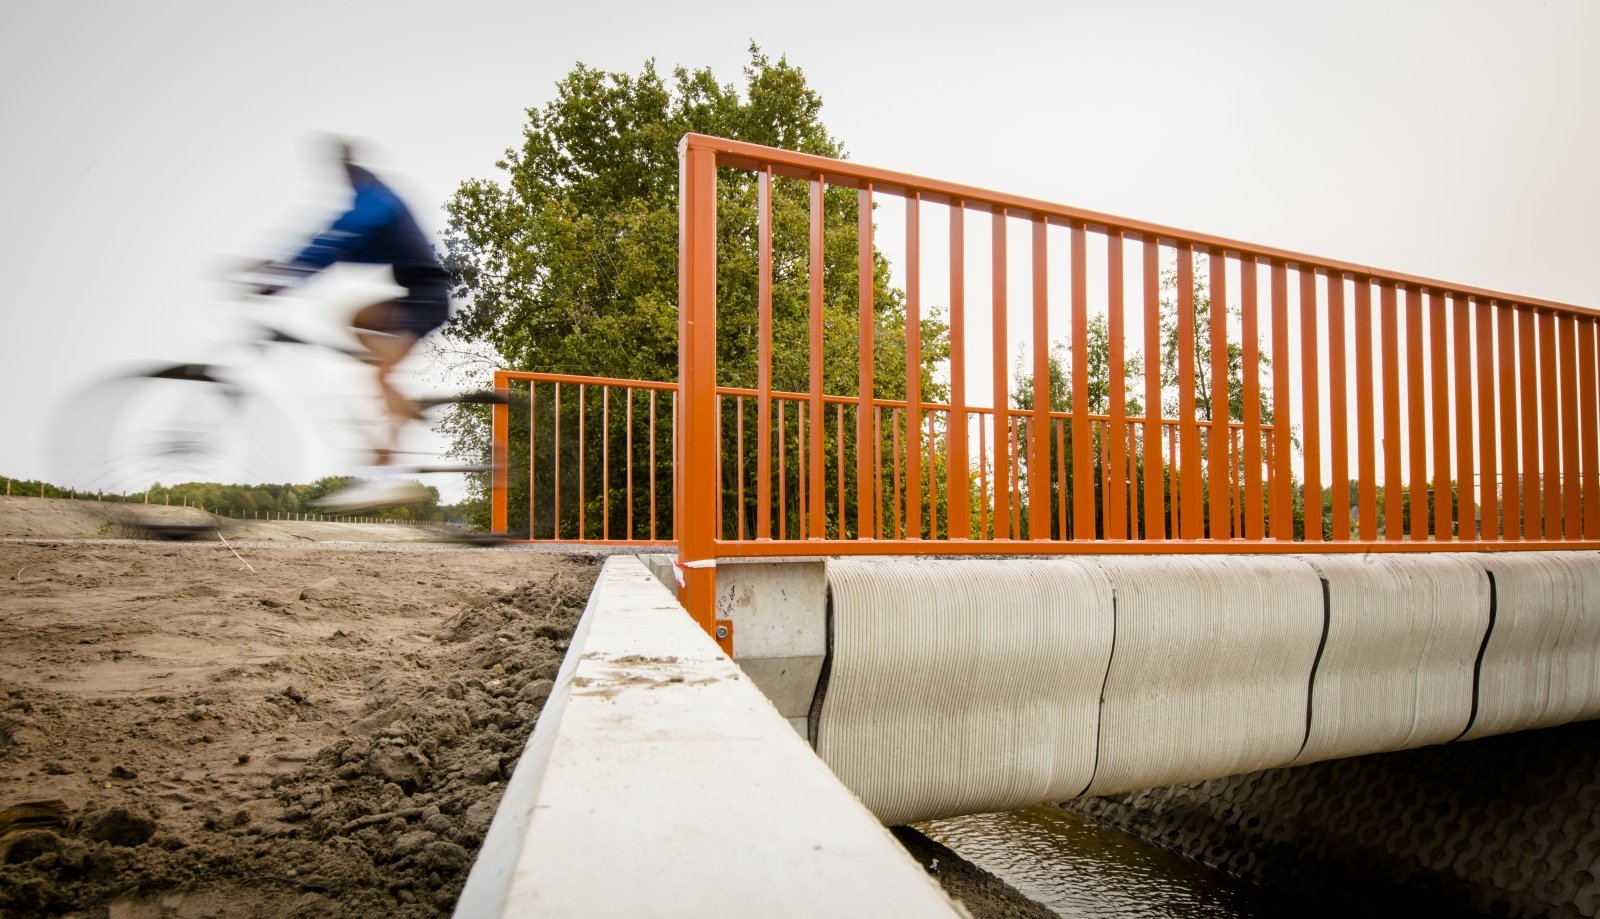 A Cyclist rides over what has been named as the world's first 3-D printed concrete bridge after its opening in Gemert, The Netherlands on October 17, 2017.   Dutch officials toasted the opening of what is being dubbed as the world's first 3D-printed concrete bridge, which is primarily meant to be used by cyclists.There was applause as officials wearing hard hats and workmen's jackets rode over the bridge on their bikes at the inauguration in the southeastern town of Gemert.  / AFP PHOTO / Bart Maat        (Photo credit should read BART MAAT/AFP/Getty Images)